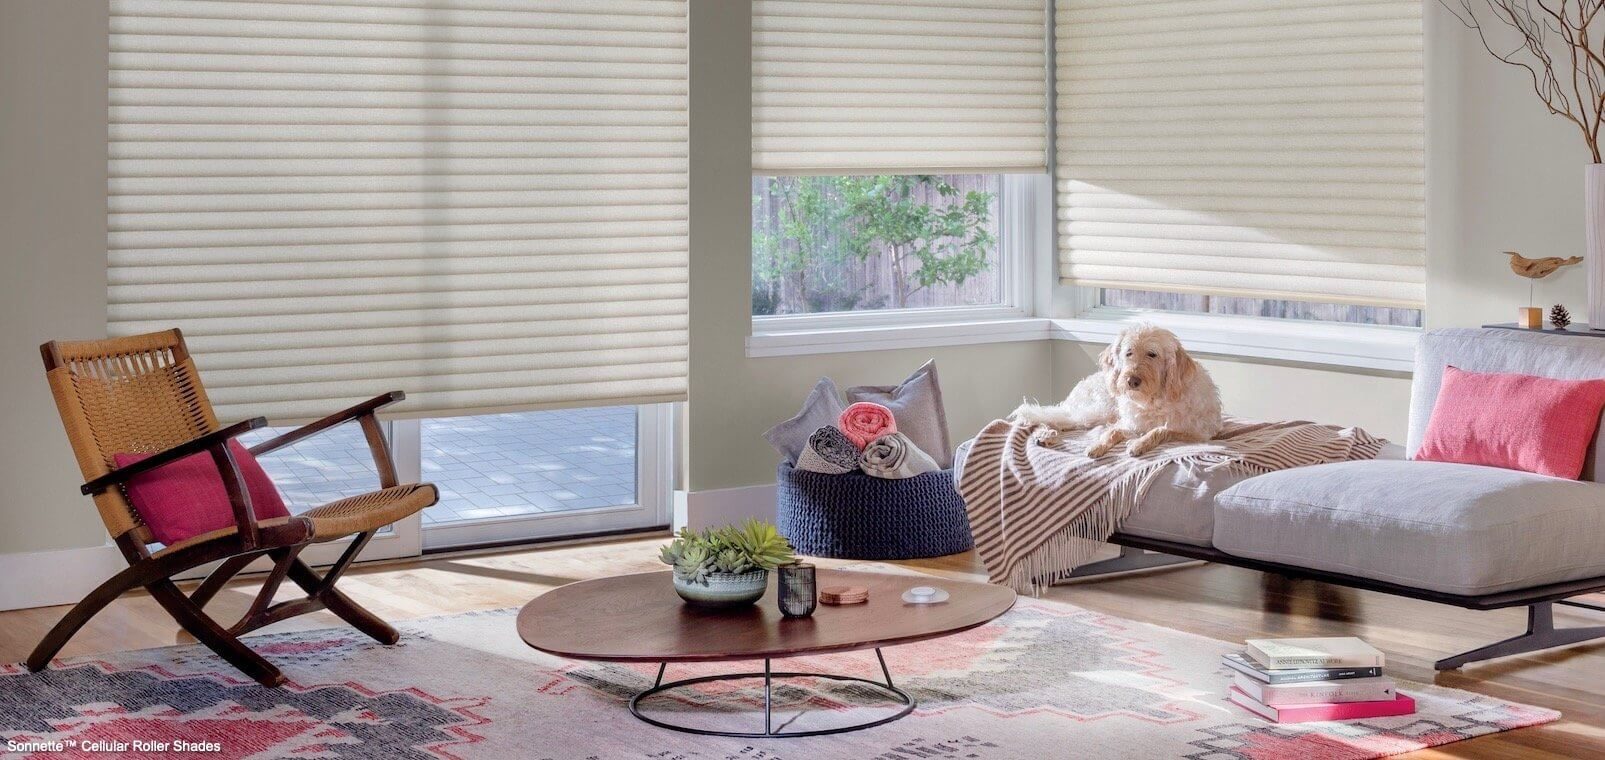 Sonnette Cellular Roller Shades - PowerView- Textura - Living Room